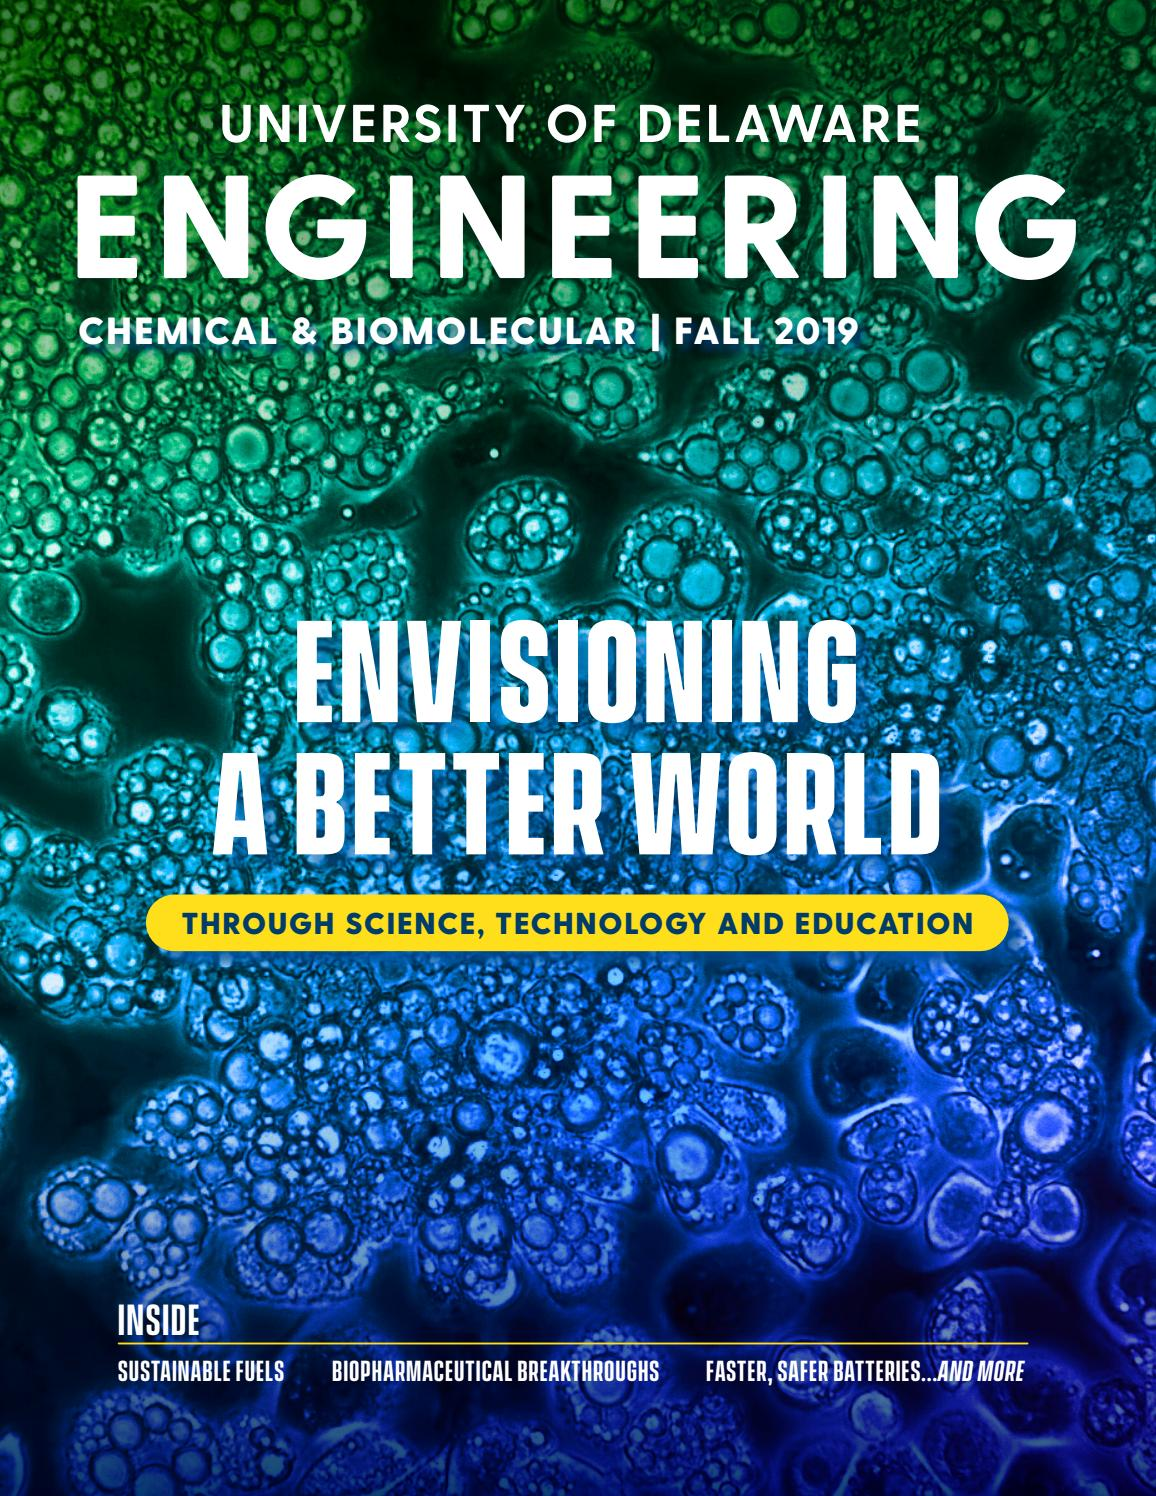 Ud Chemical Biomolecular Engineering Magazine 2019 By Ud College Of Engineering Issuu